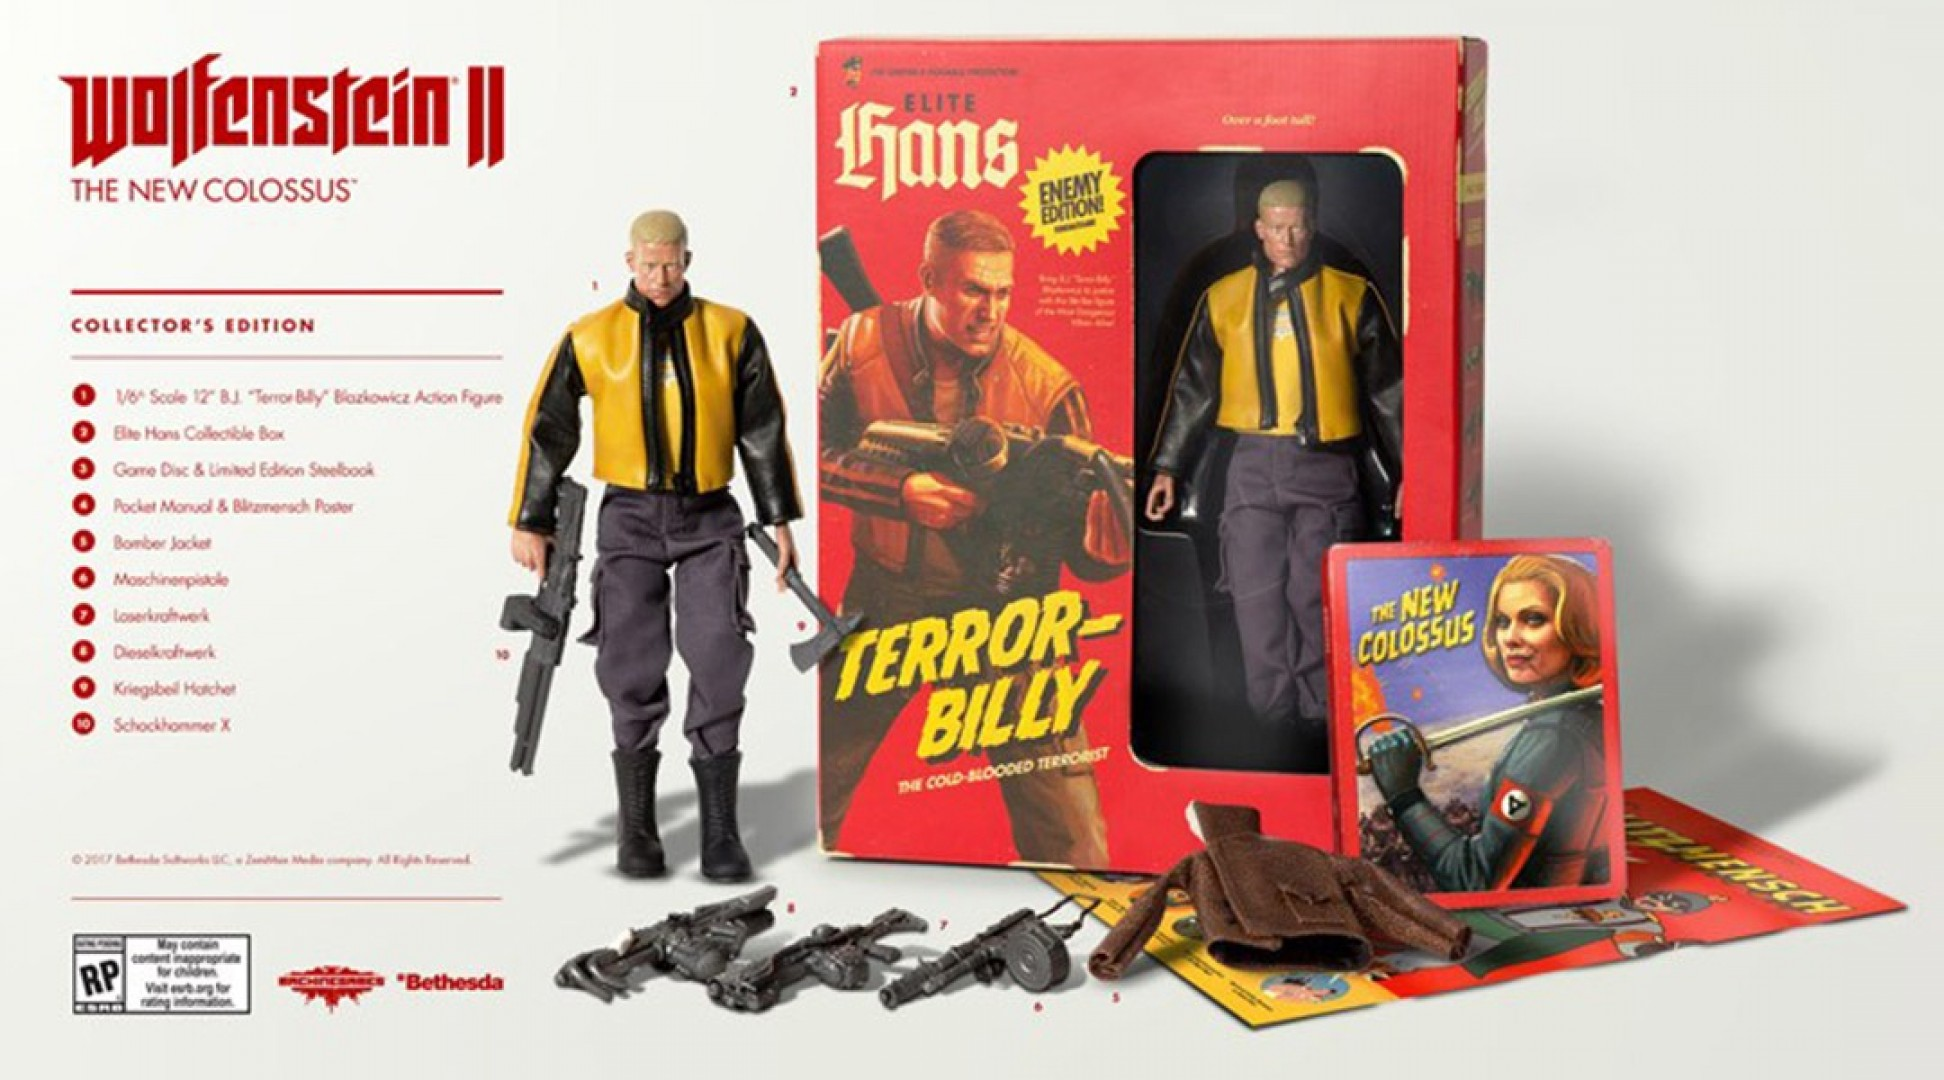 Wolfenstein II: The New Colossus Collector's Edition